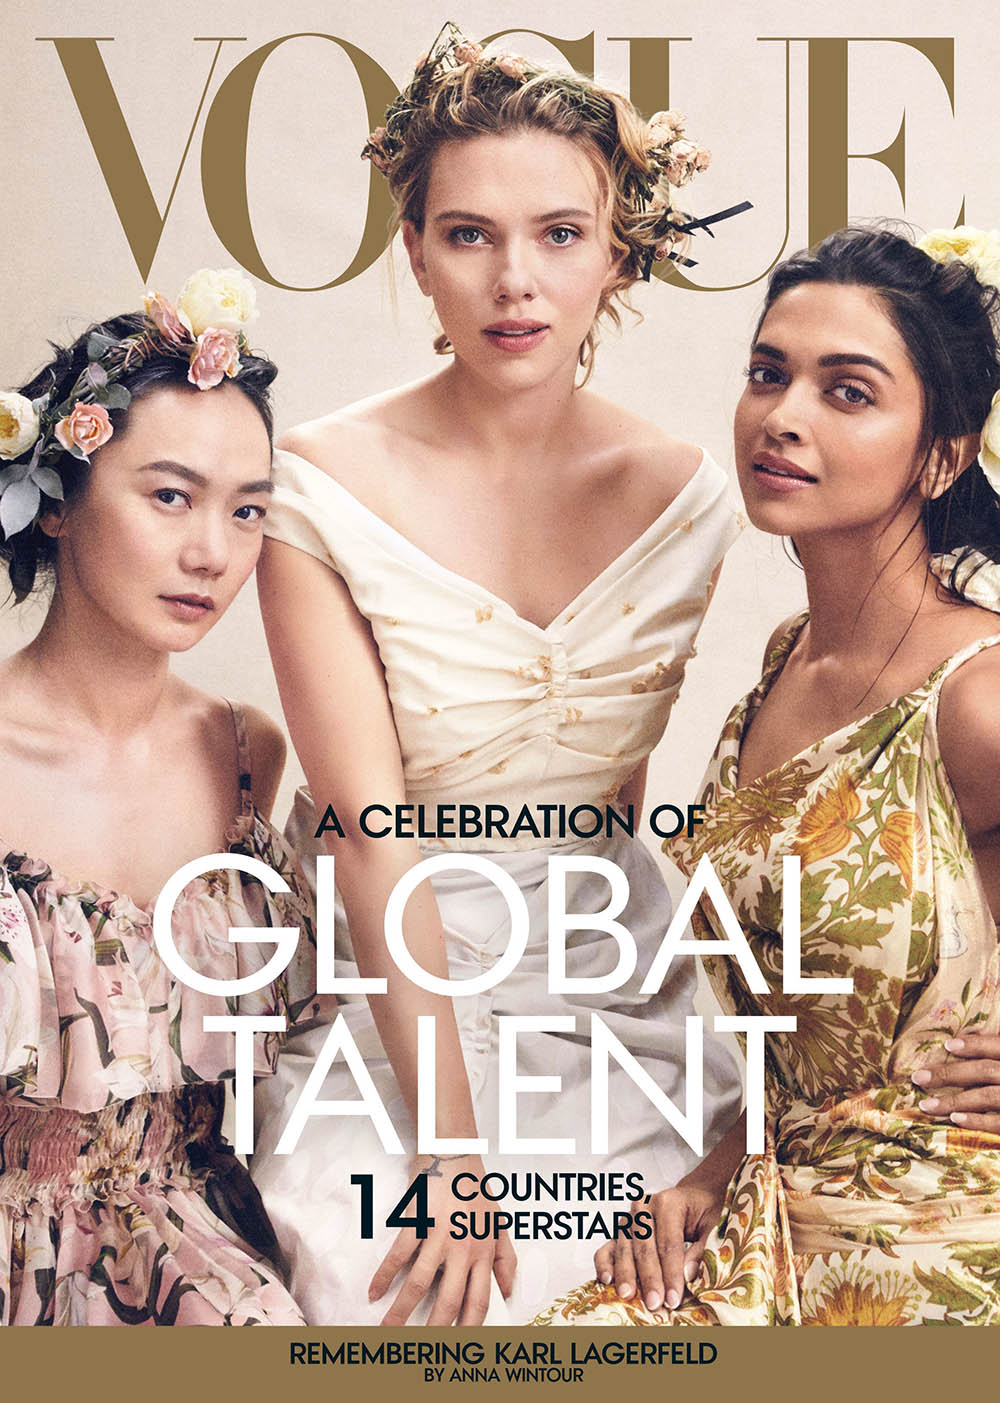 Vogue US April 2019 covers by Mikael Jansson